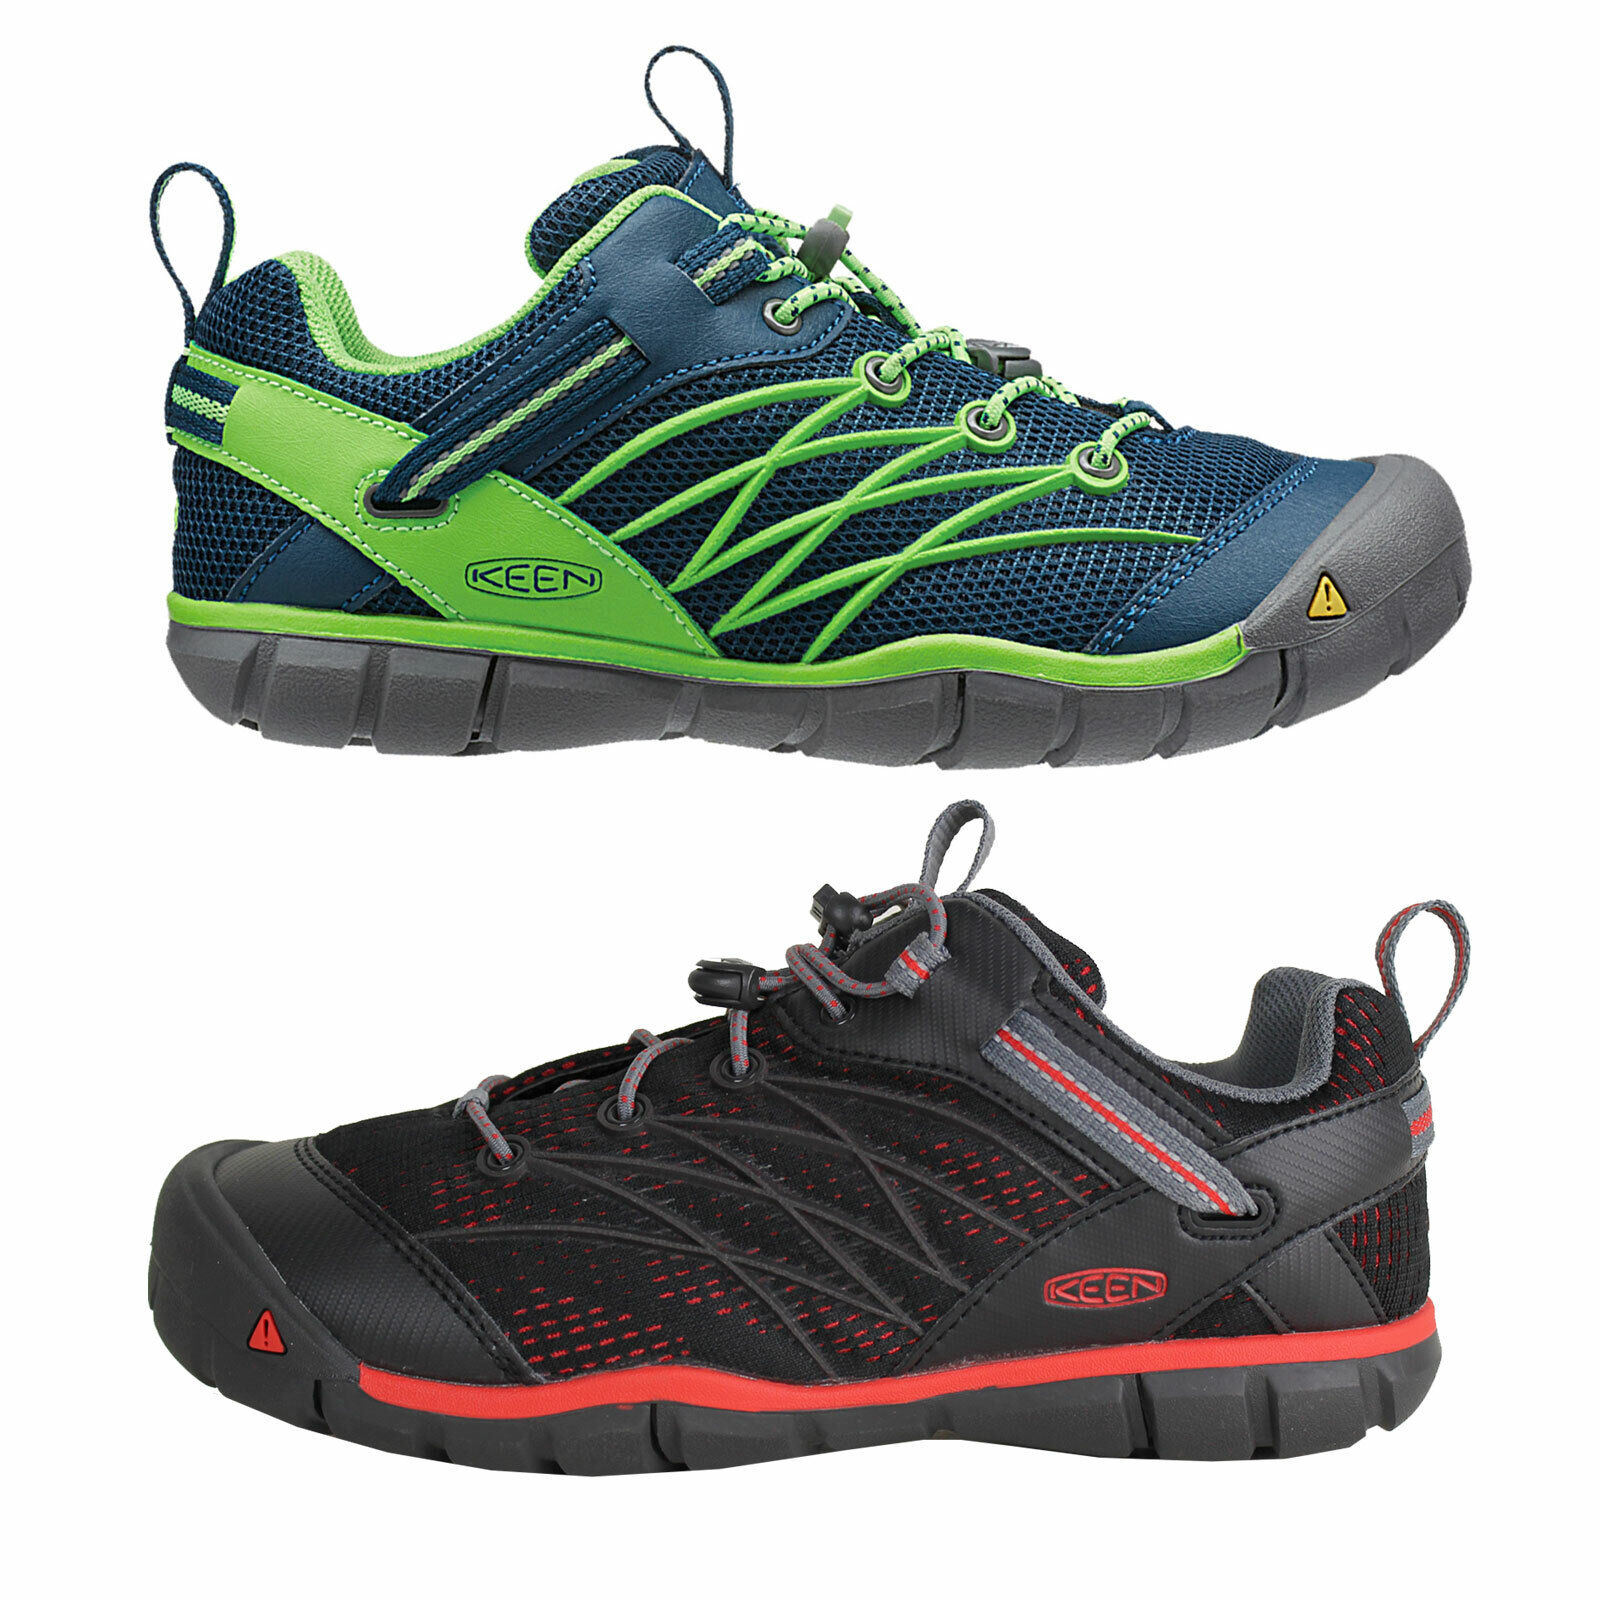 Kids Hiking Boots Shoes Trekking Shoes